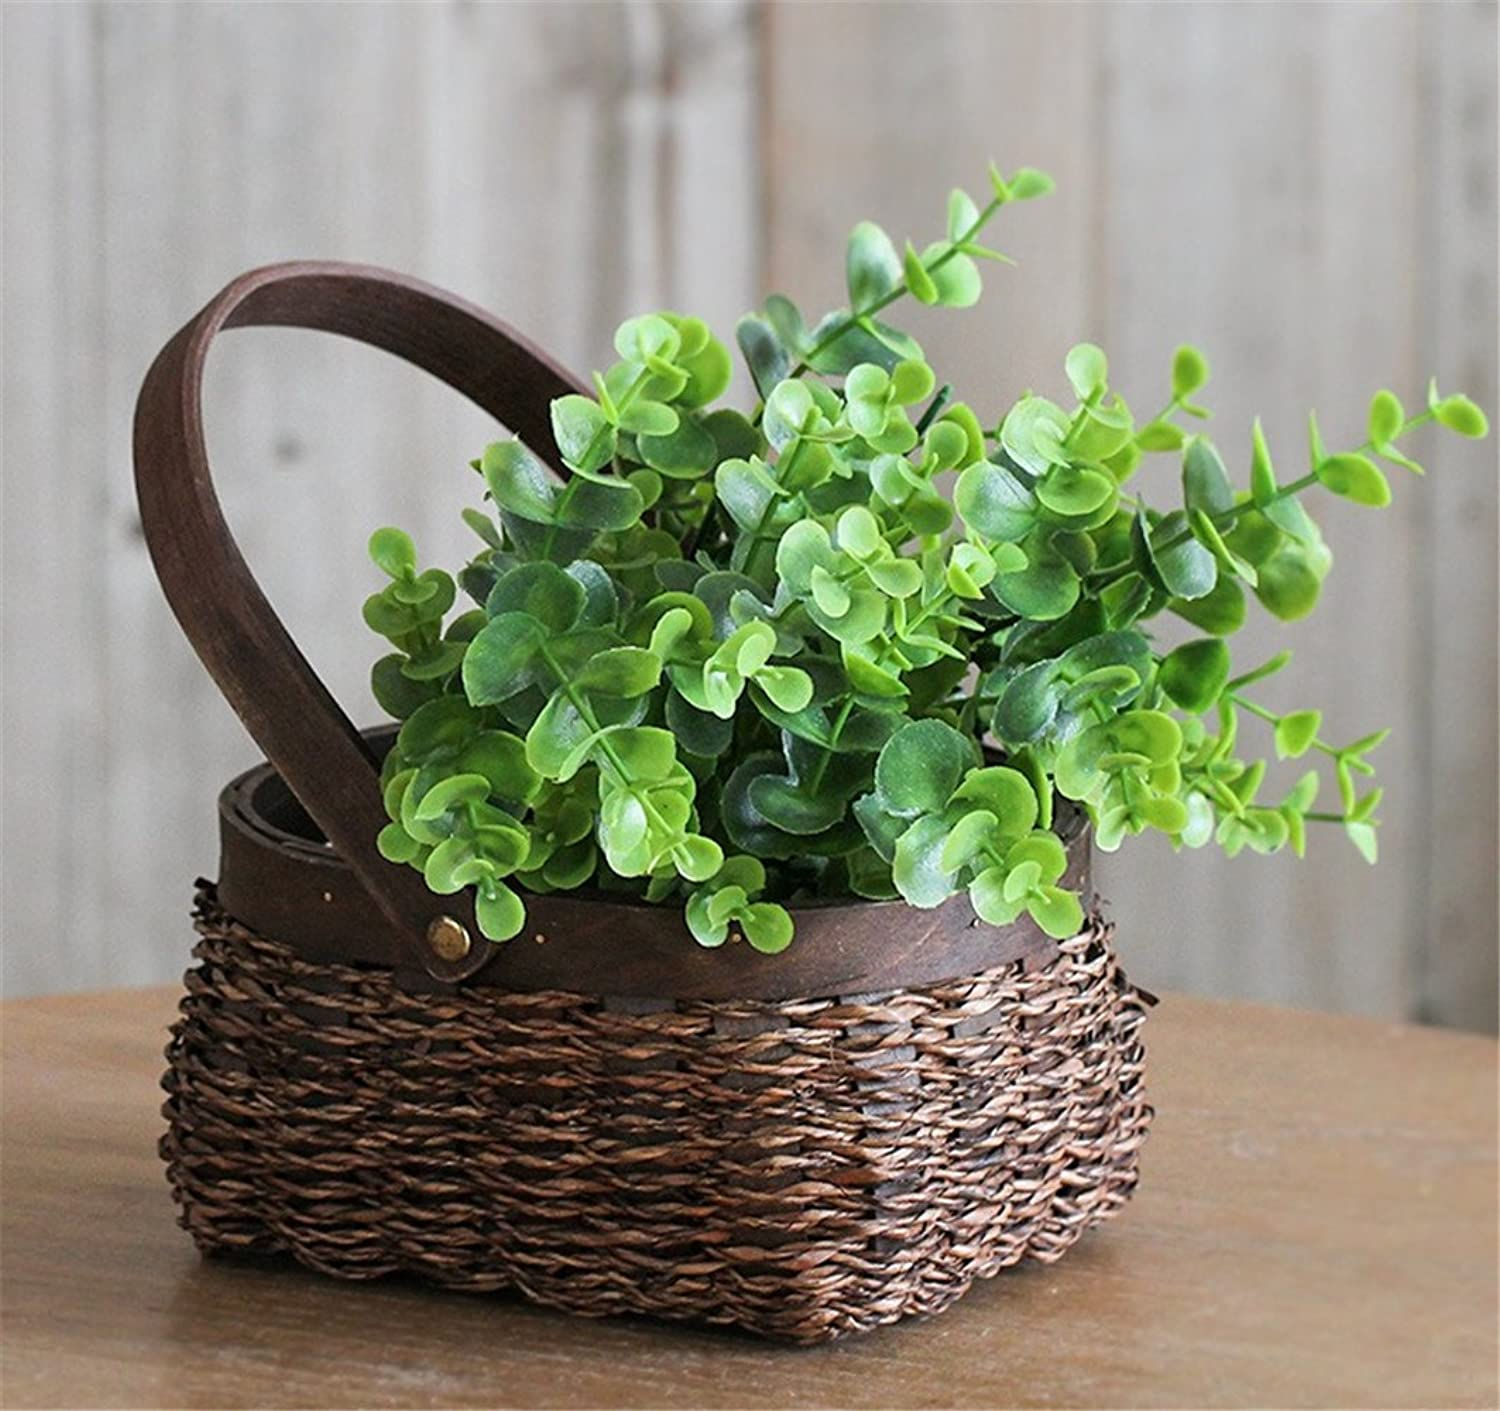 NOHOPE American Style Country Style Woven Flower Baskets Floral Kit Cafe Shops Decorated Flowers Emulation Flower Home Ornament Creative Gifts Mother's Day Gift